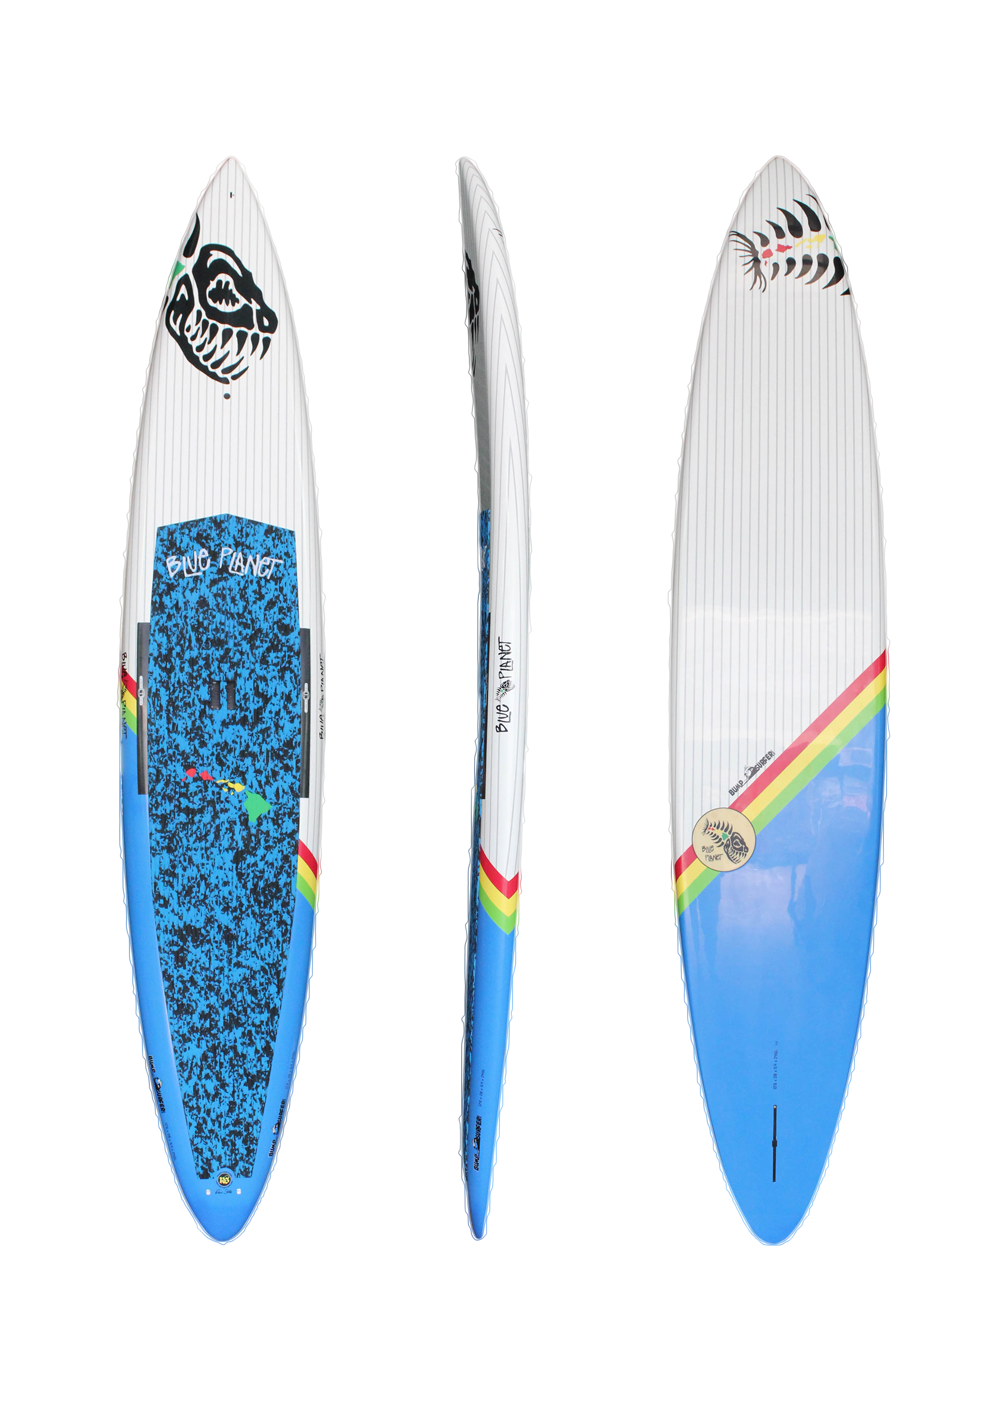 12'6_ x 28_ Bump surfer wht_blue HP